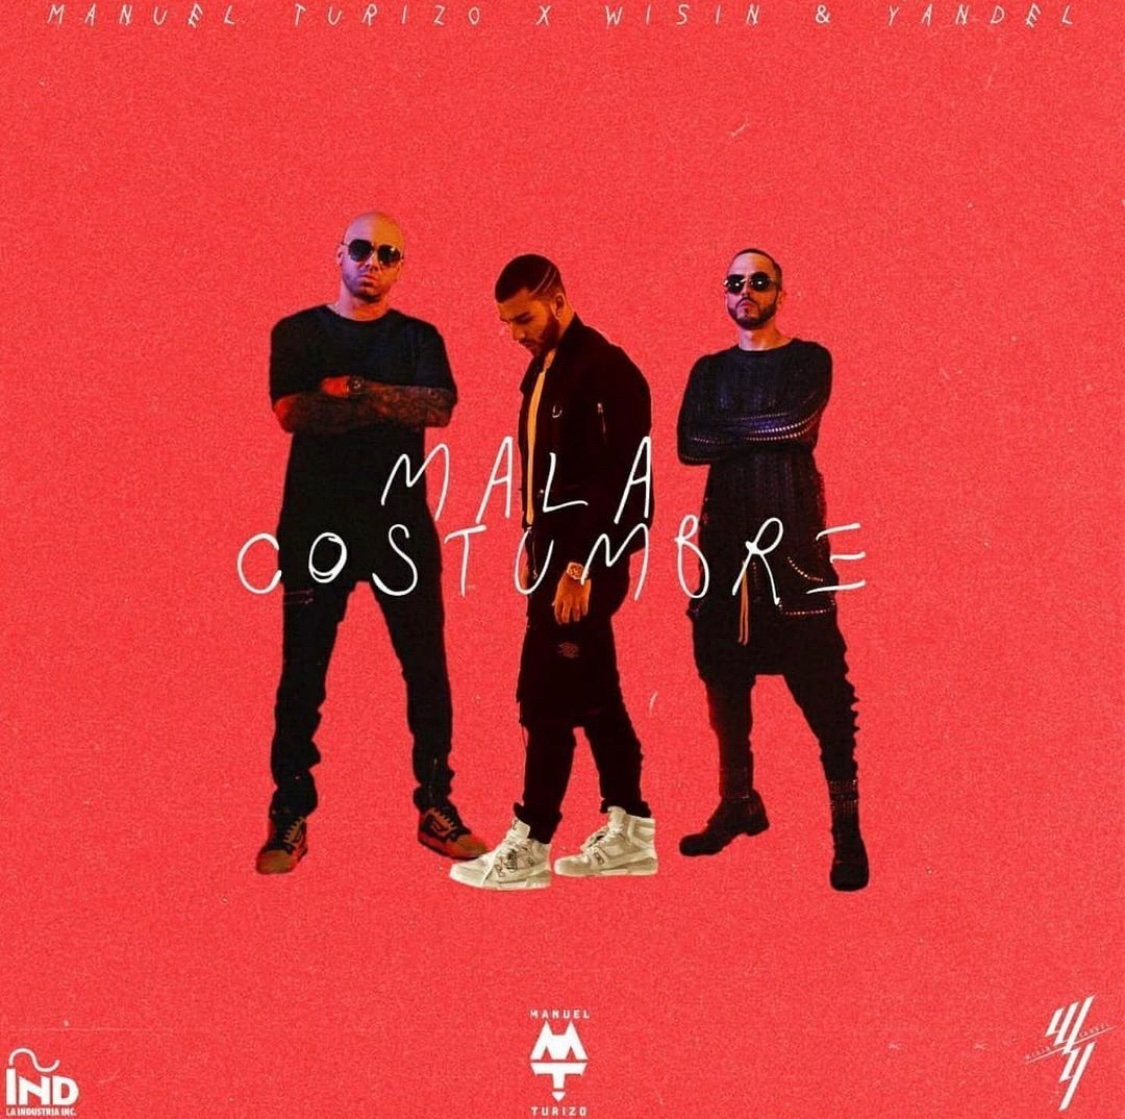 New Heights: Manuel Turizo collaborates with Wisin Y Yandel in Mala Costumbre